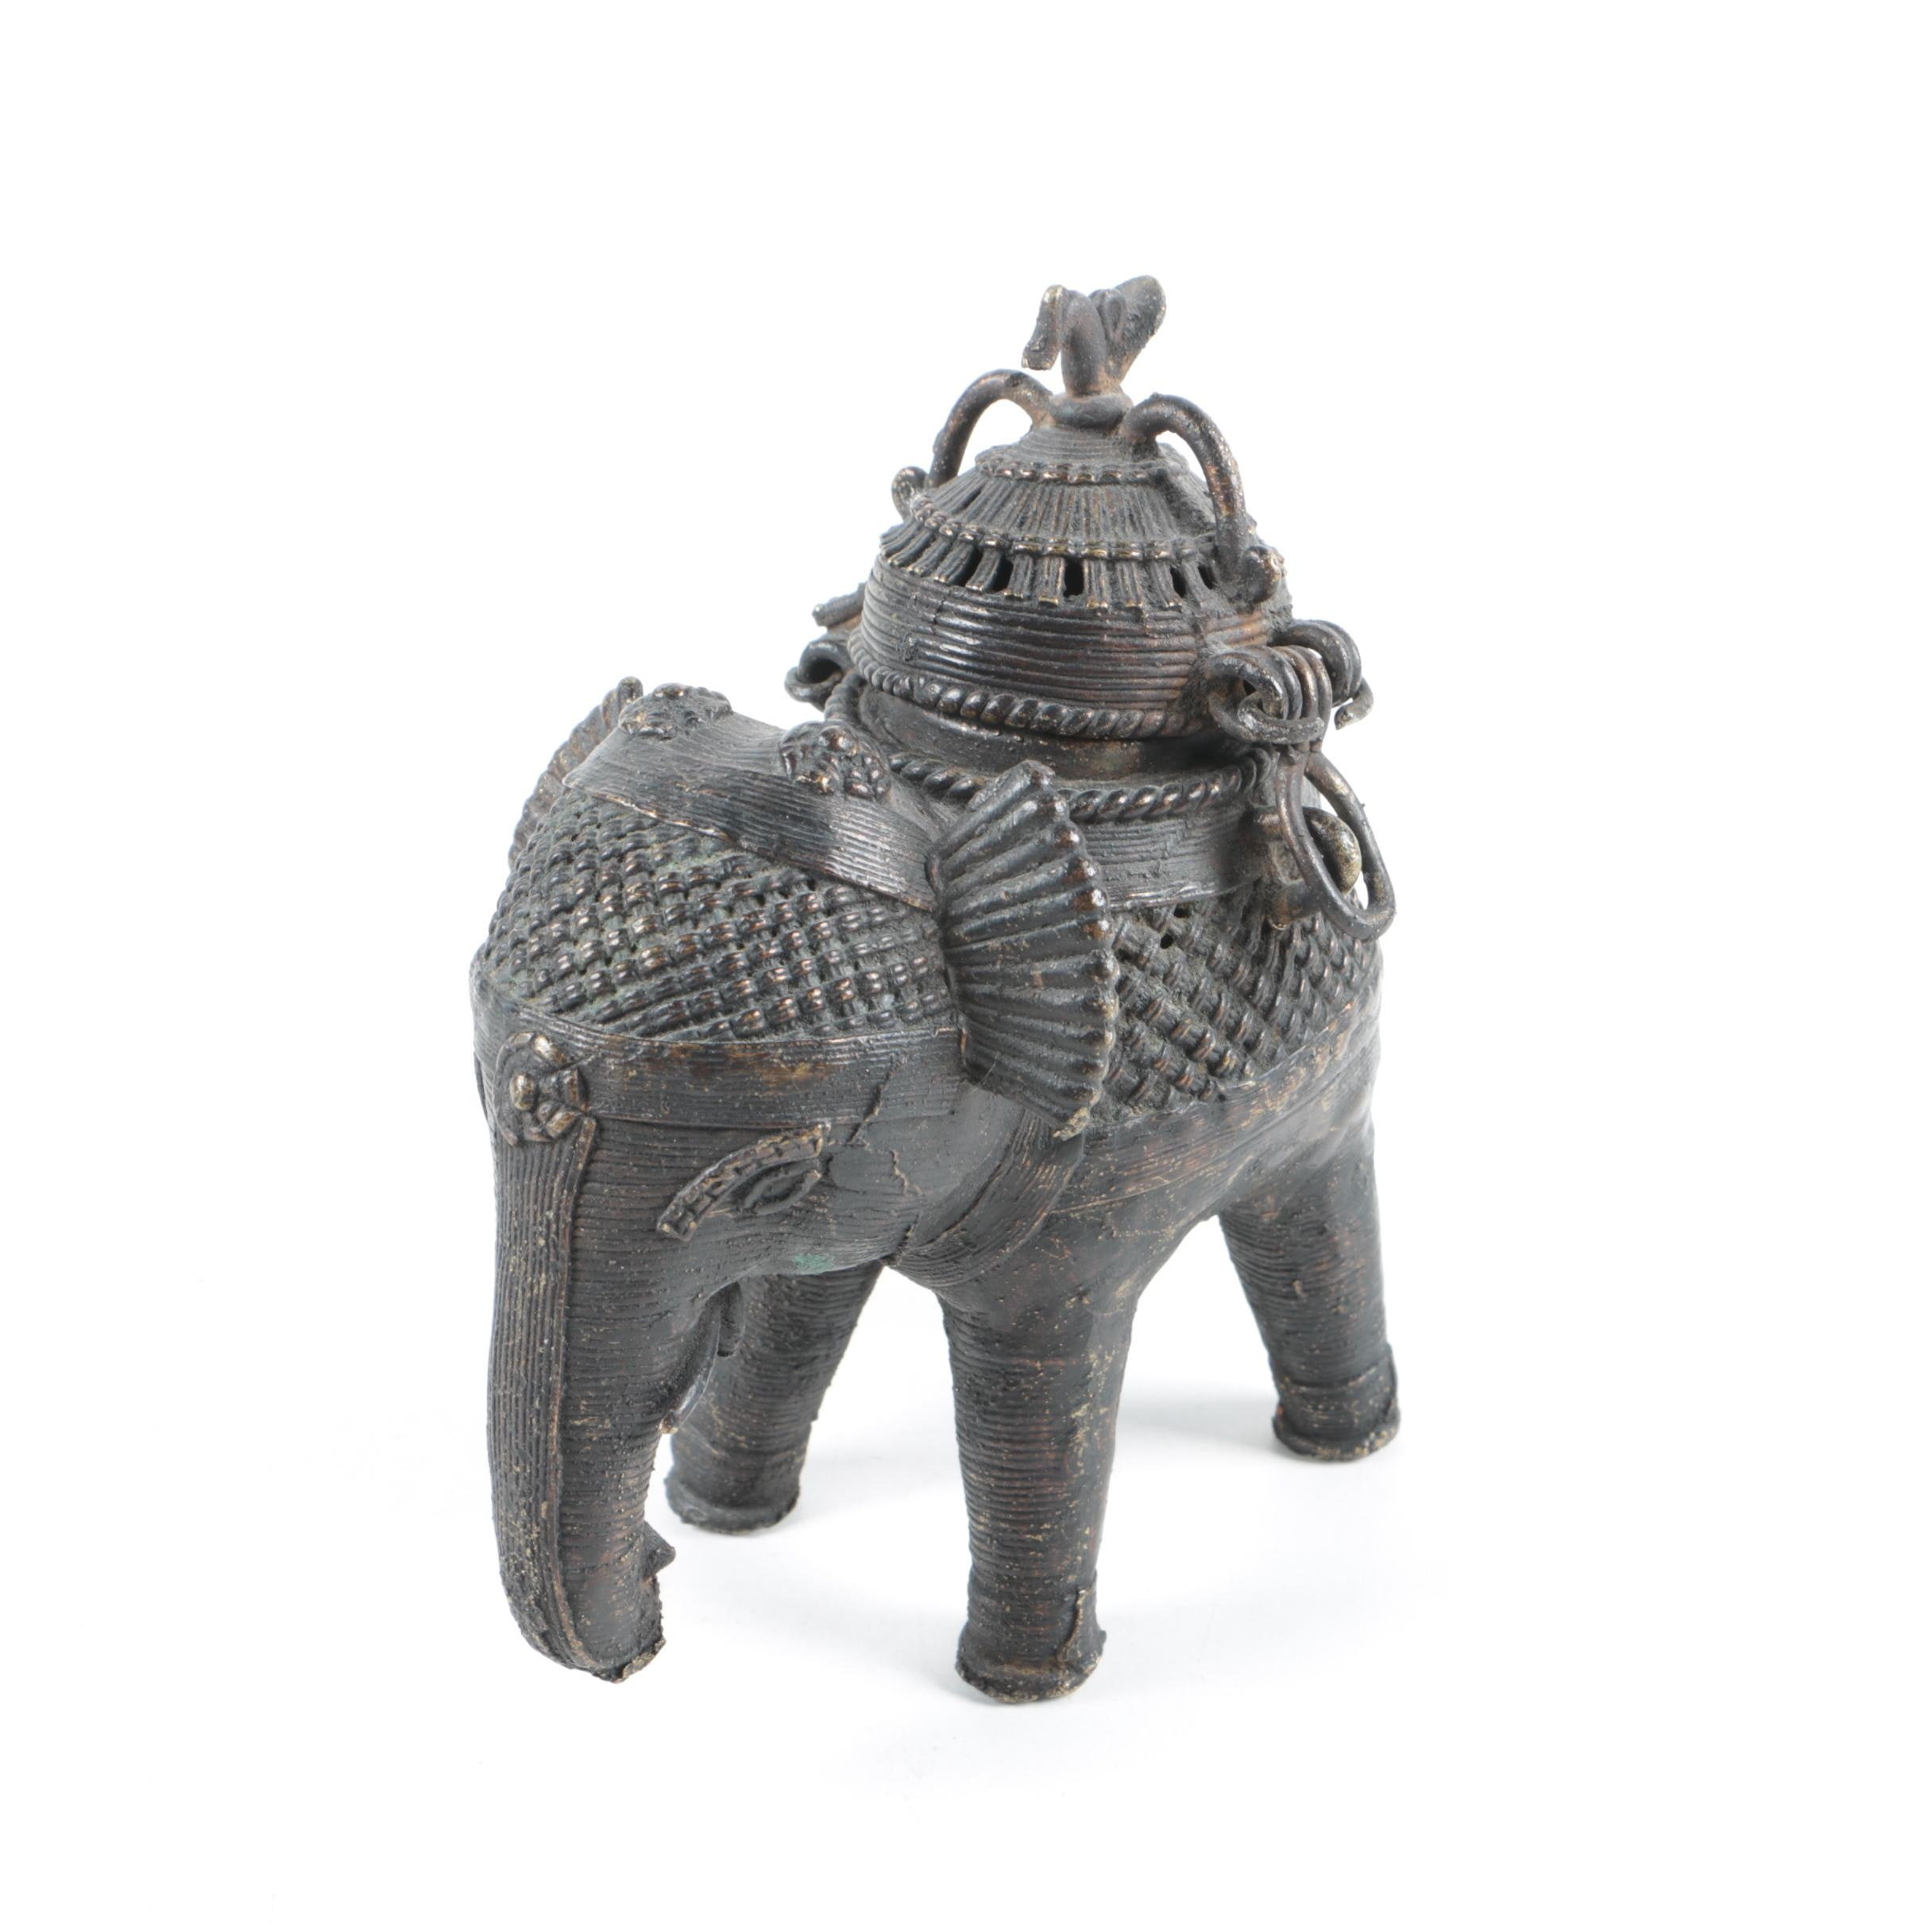 Metal South Asian Elephant Censer or Container